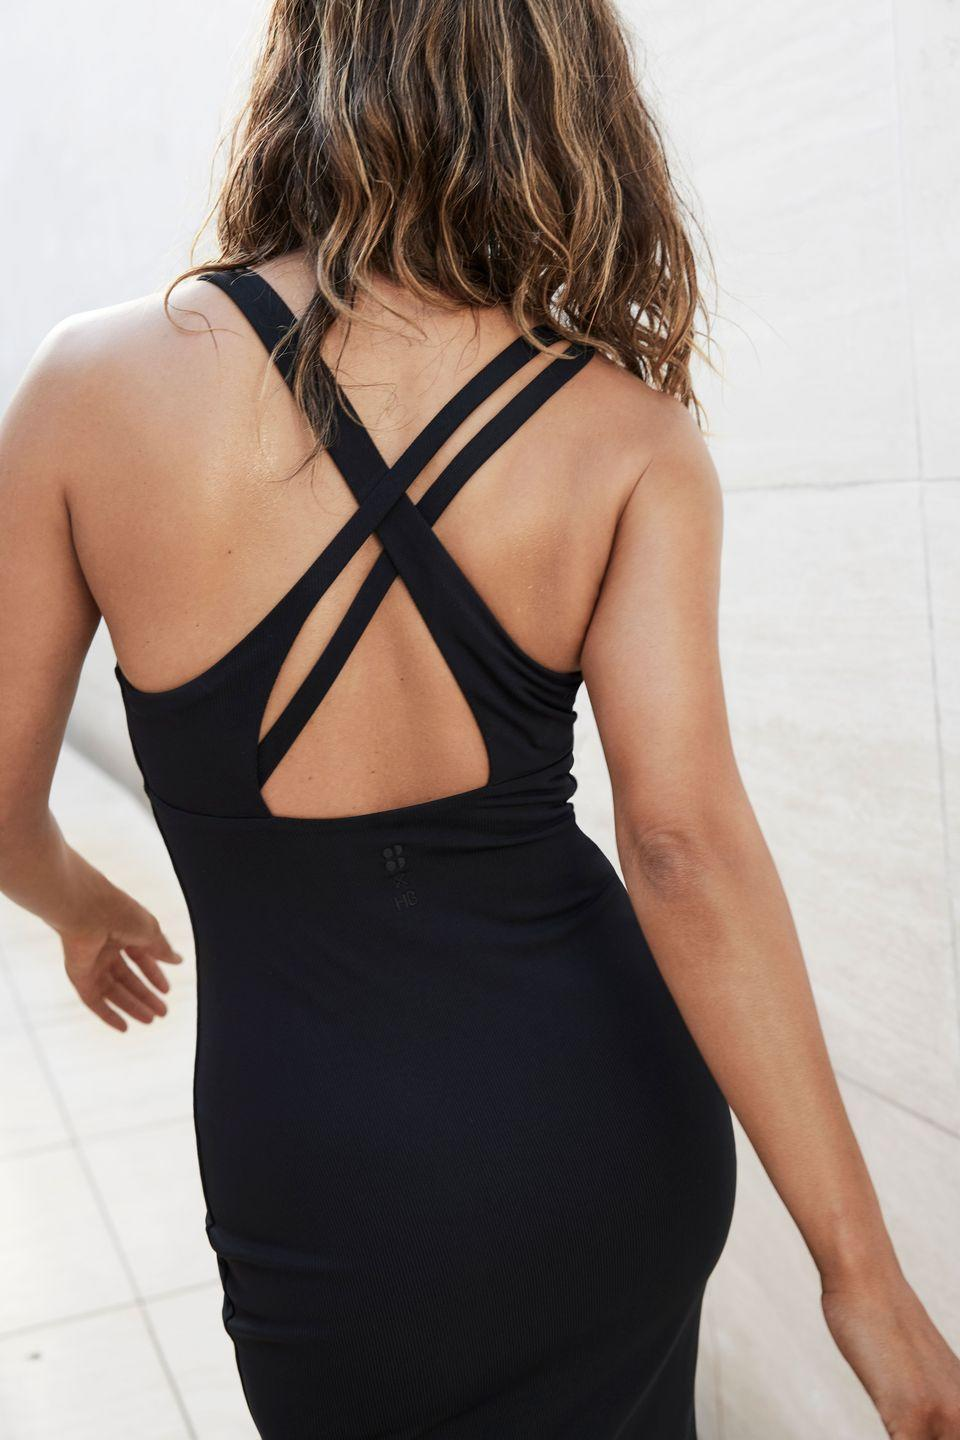 """<p>This slinky midi dress is the perfect dress to throw on after a sweaty cardio session. The stretch jersey fabric means you can roll it up in your gym bag and it will emerge crease-free for a pulled together look post-class. The strappy criss-cross back makes it a summer winner.</p><p><strong>How much? </strong>£120</p><p><a class=""""link rapid-noclick-resp"""" href=""""https://go.redirectingat.com?id=127X1599956&url=https%3A%2F%2Fwww.sweatybetty.com%2Fhalle-berry%2Fhalle-berry-edit%2Femily-strappy-back-dress-SB6911_Black.html%3Fdwvar_SB6911__Black_color%3Dblack%26cgid%3Dhalle-berry-edit%26tile%3D6.0%23start%3D6&sref=https%3A%2F%2Fwww.womenshealthmag.com%2Fuk%2Fgym-wear%2Fg36447378%2Fsweaty-betty-halle-berry%2F"""" rel=""""nofollow noopener"""" target=""""_blank"""" data-ylk=""""slk:SHOP NOW"""">SHOP NOW</a></p>"""